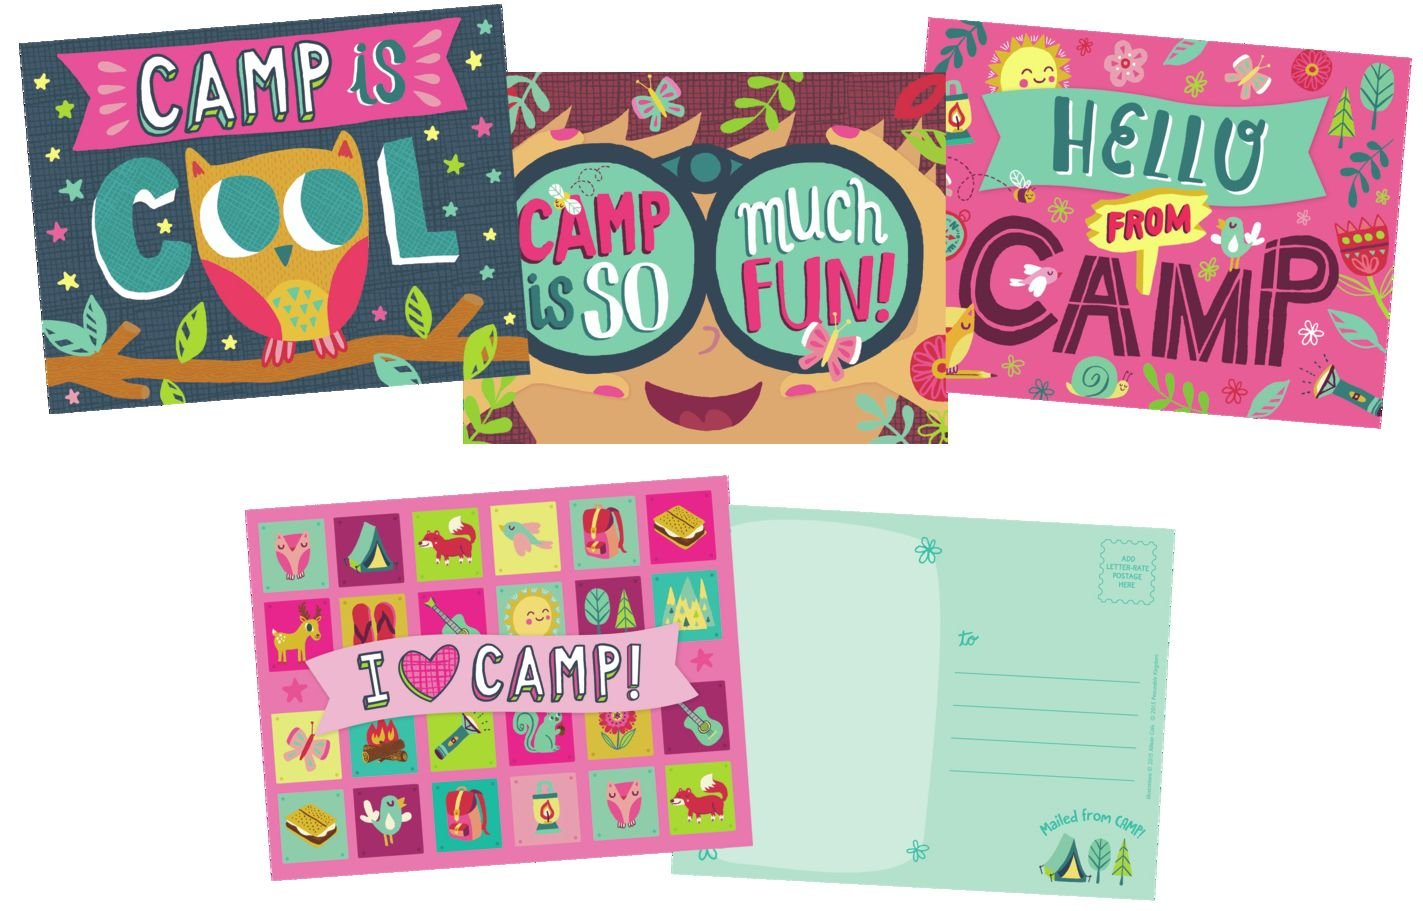 12 Postcards In 3 Designs made our CampingForFoodies hand-selected list of 100+ Camping Stocking Stuffers For RV And Tent Campers!